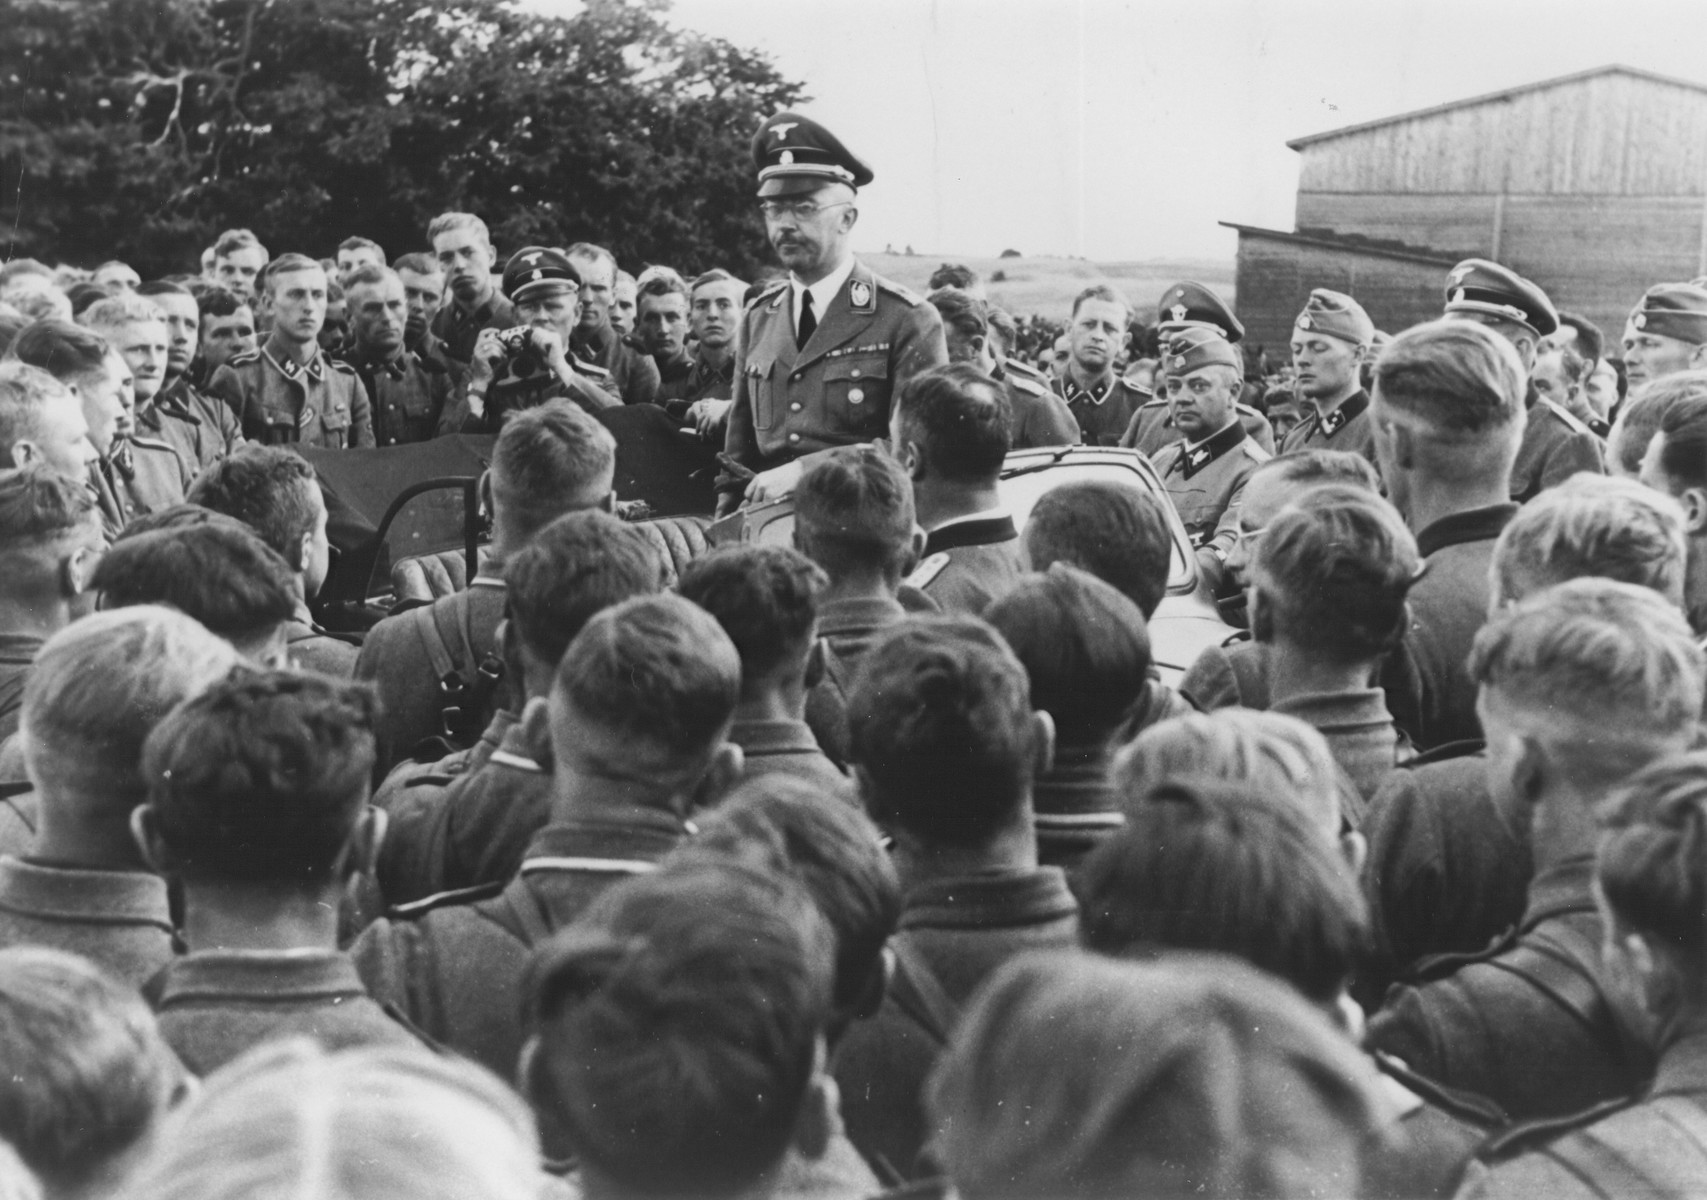 Reichsfuehrer-SS Heinrich Himmler addresses a group of soldiers in a cavalry regiment of the Waffen SS in the eastern territories.  Among those pictured are Kurt Knoblauch (standing near car) and Himmler's boyguard, Josef Kiermaier (holding a camera).